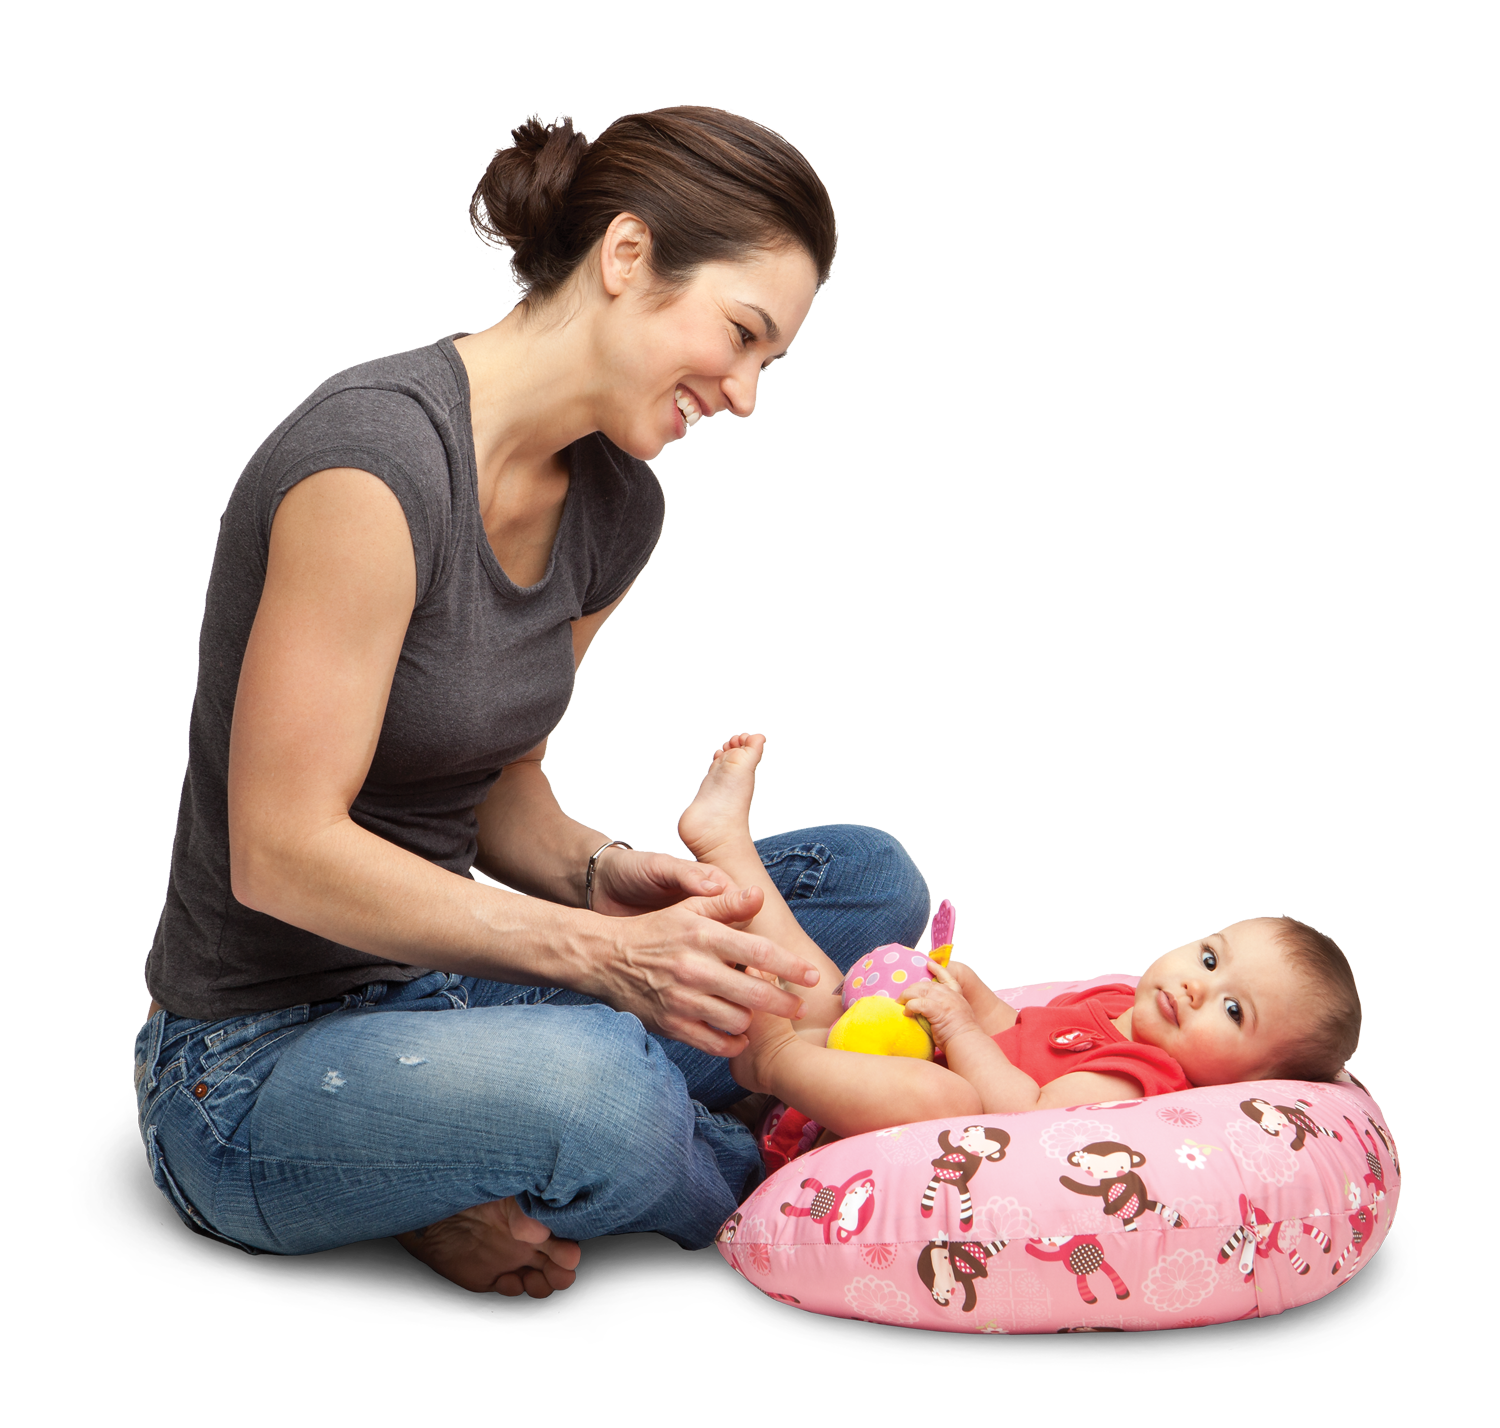 Mom png. And baby transparent images